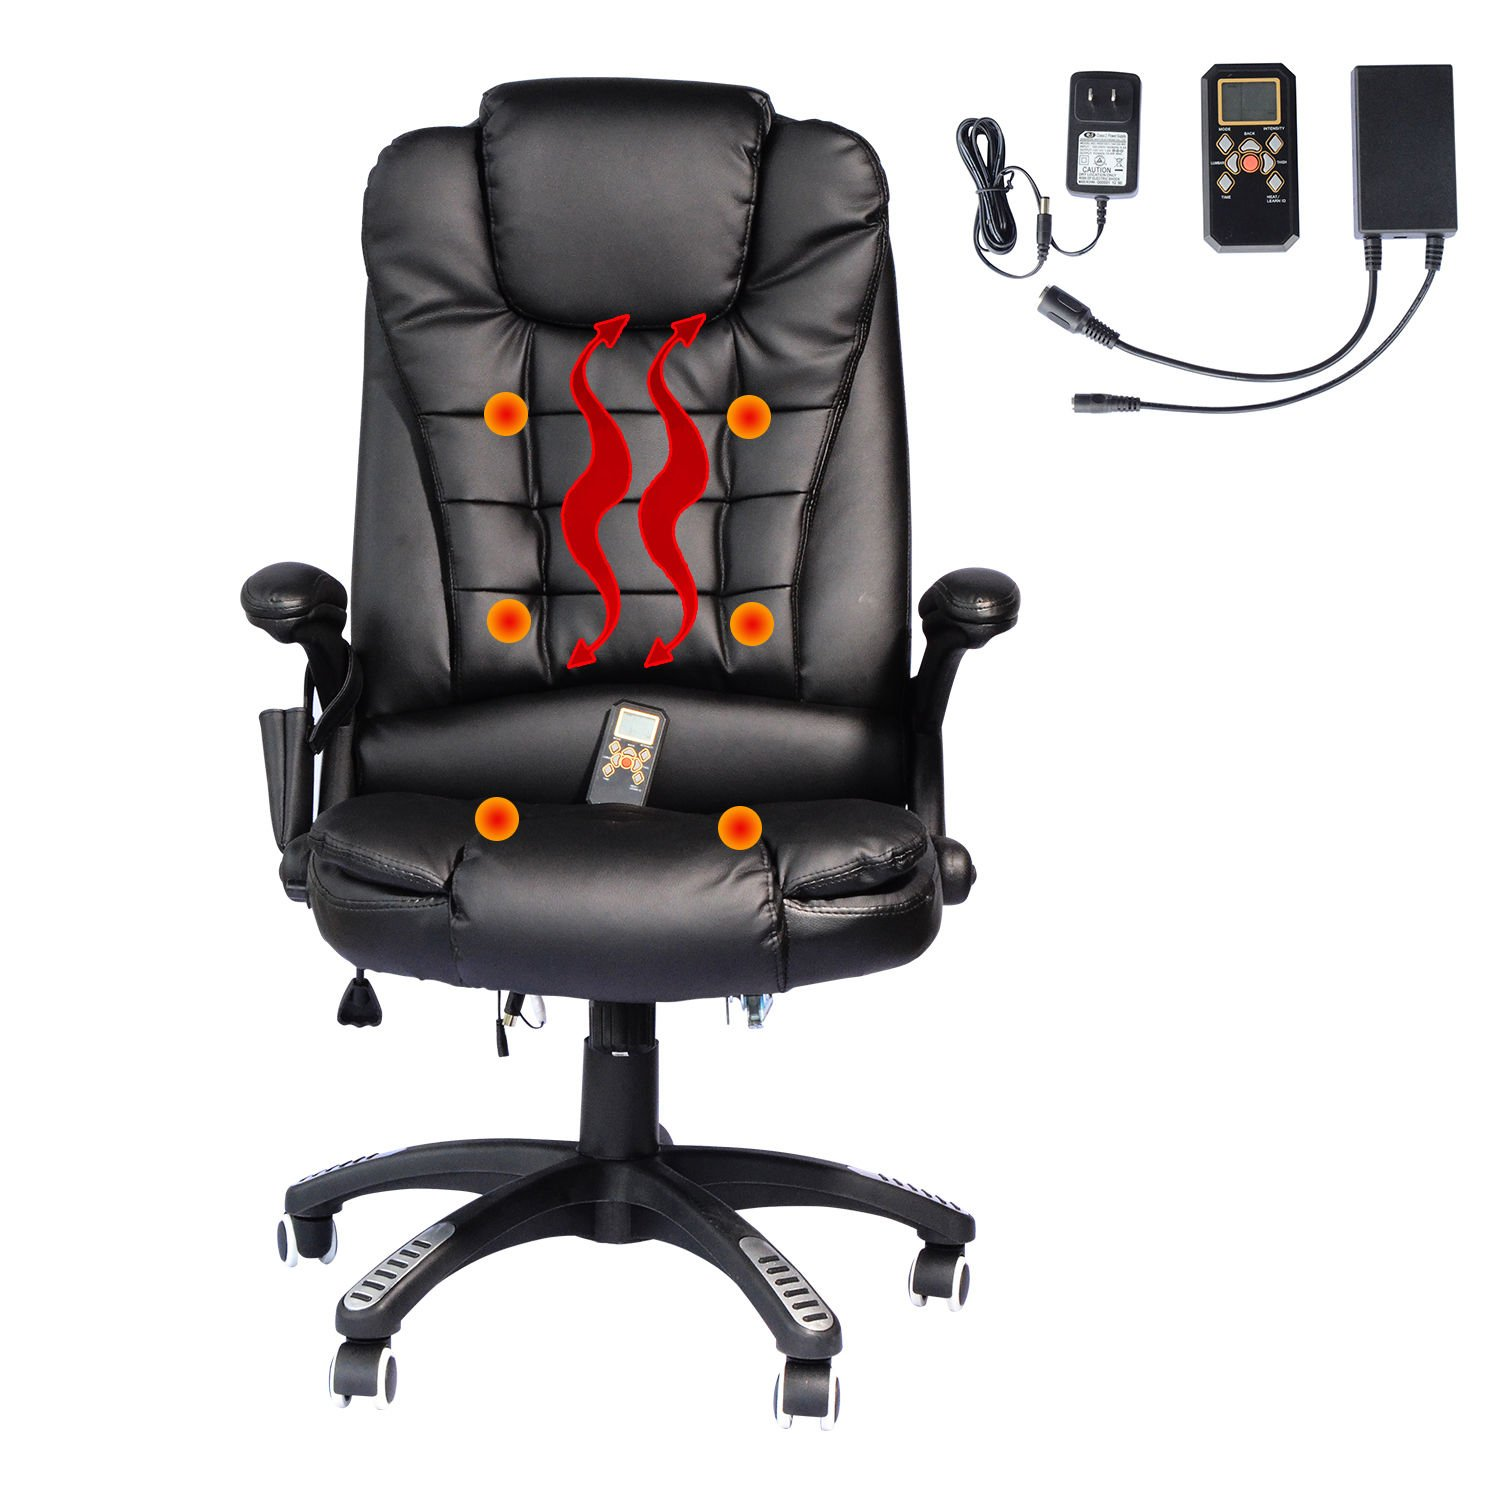 Amazon Hom Executive Ergonomic PU Leather Heated Vibrating